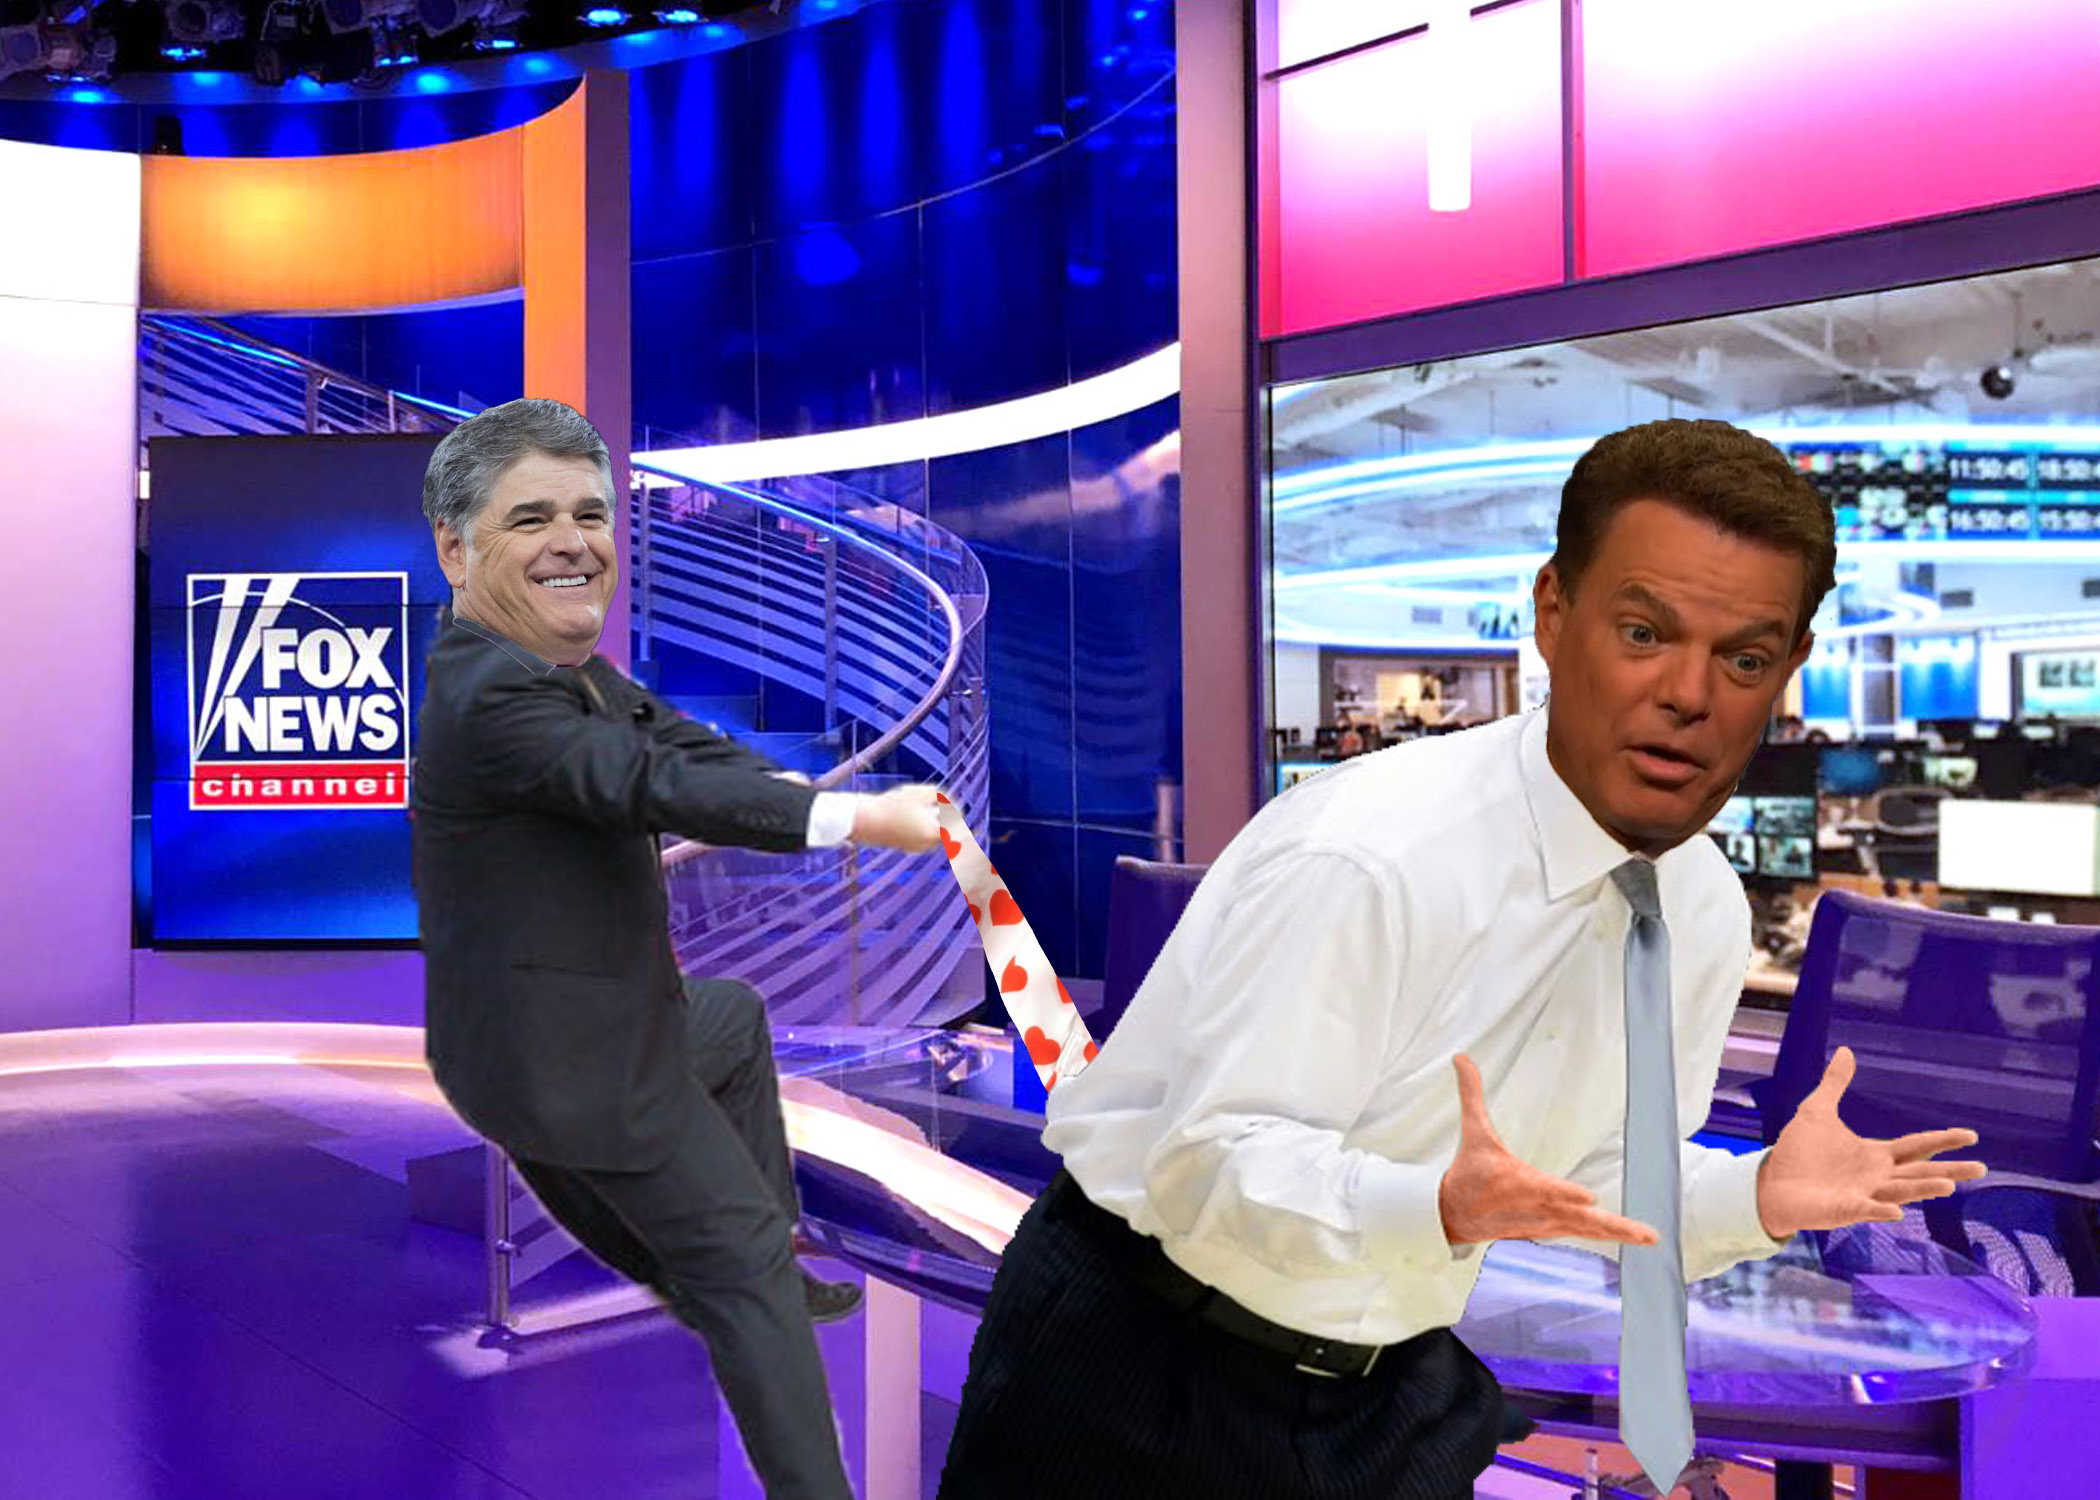 Sean Hannity Delivers Monster Wedgie To Shep Smith